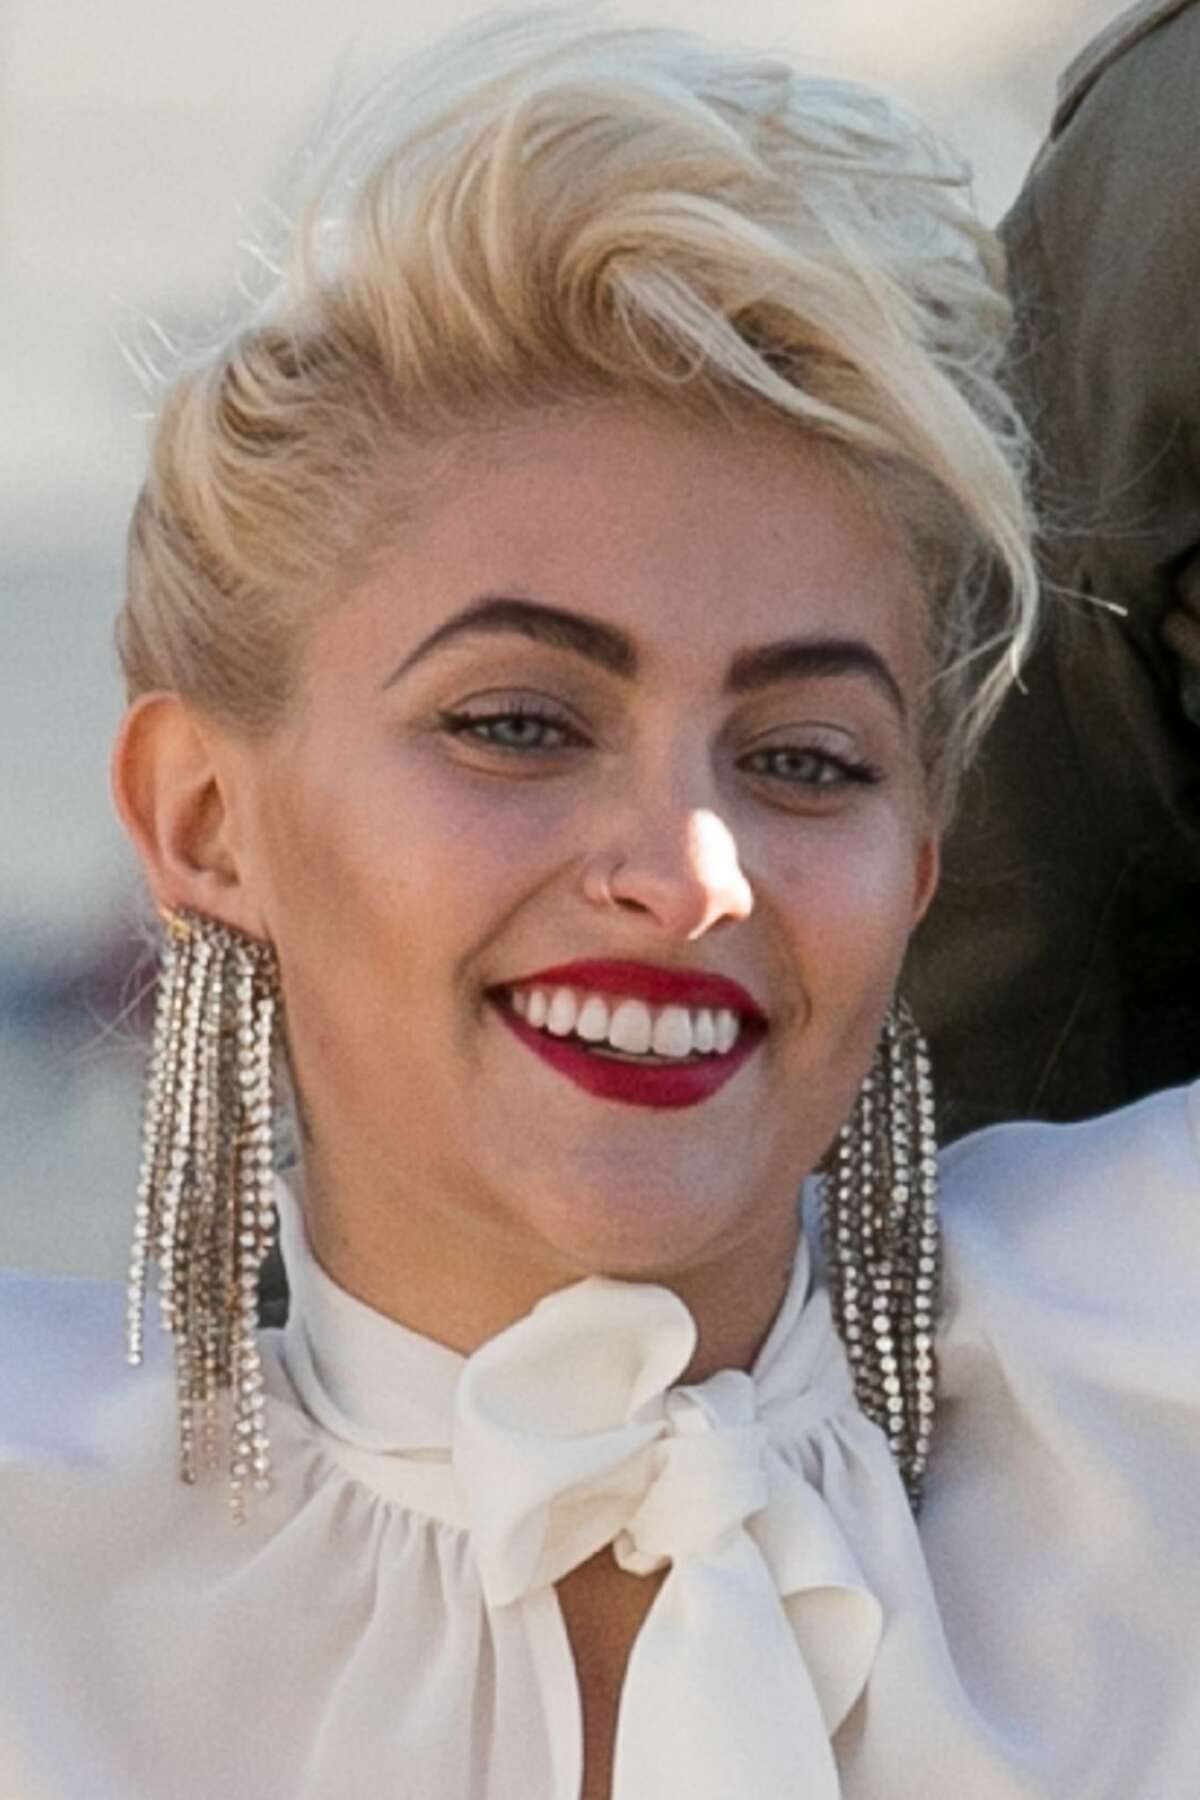 Paris Jackson is spotted during a photo shoot at Eiffel Tower on January 18, 2017 in Paris, France. >> Keep clicking to see photos more photos of Paris at Paris Fashion Week.